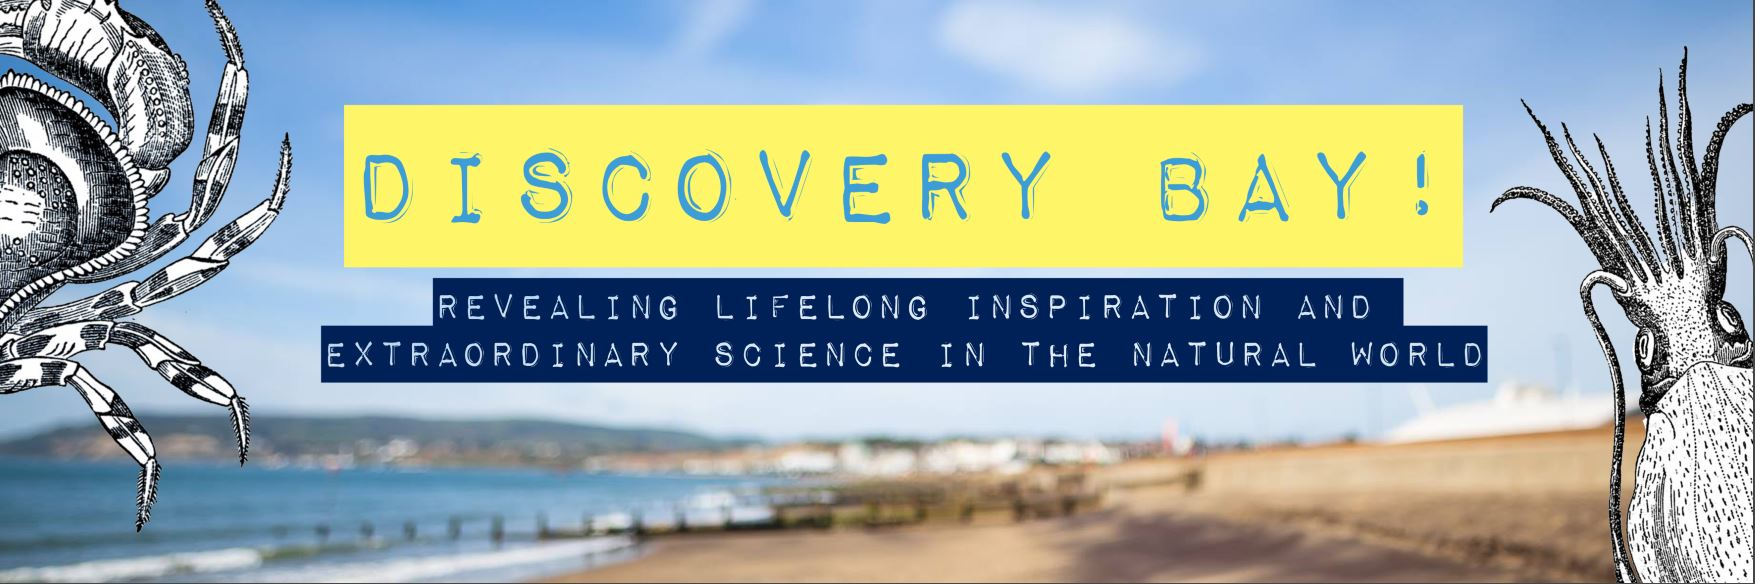 discovery bay header